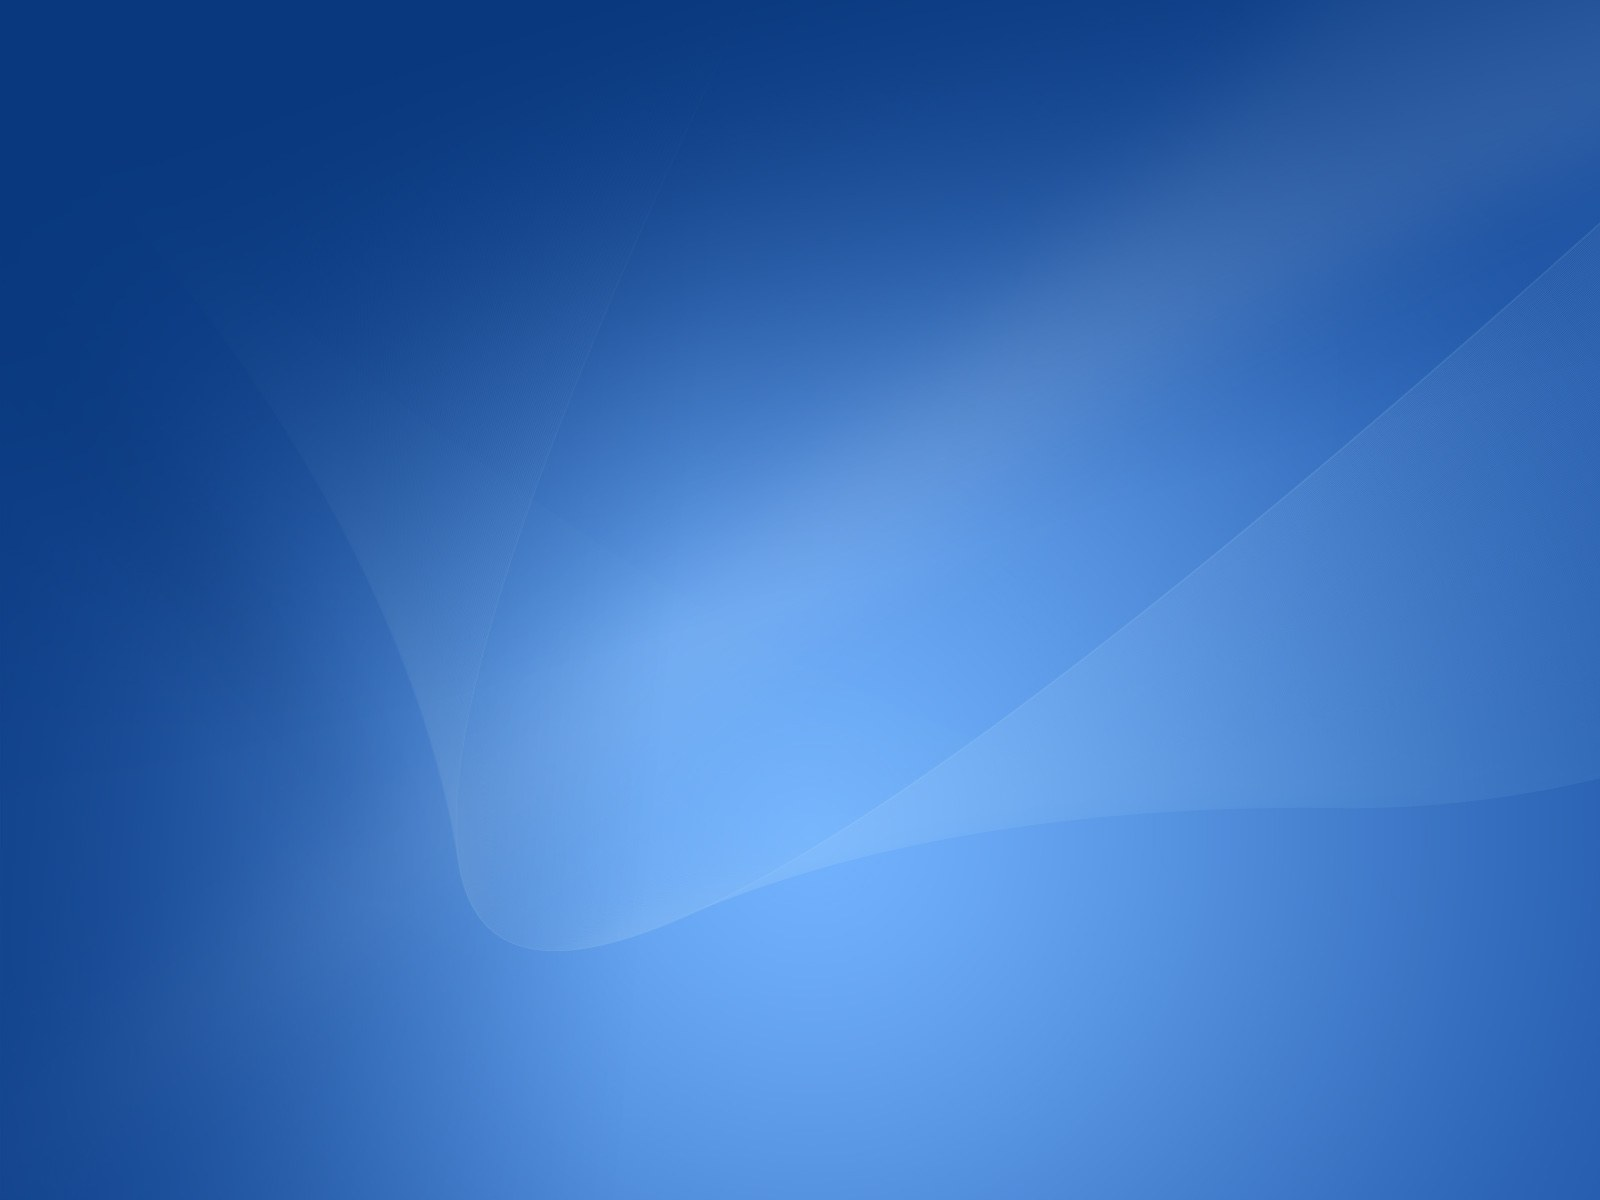 Cool Wallpapers For Mac Os X 1 1600x1200